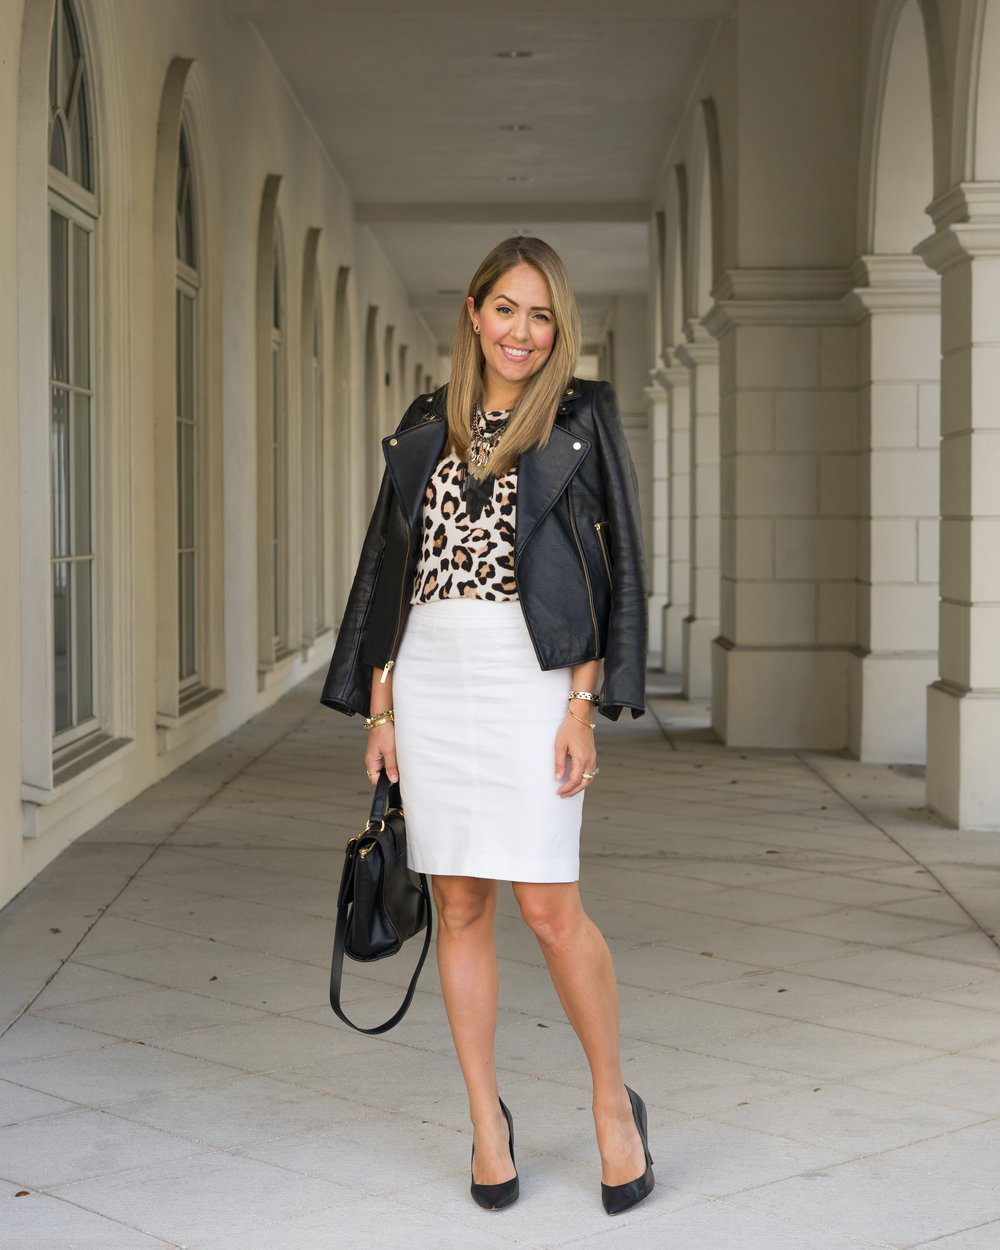 Black leather jacket, leopard top, white skirt